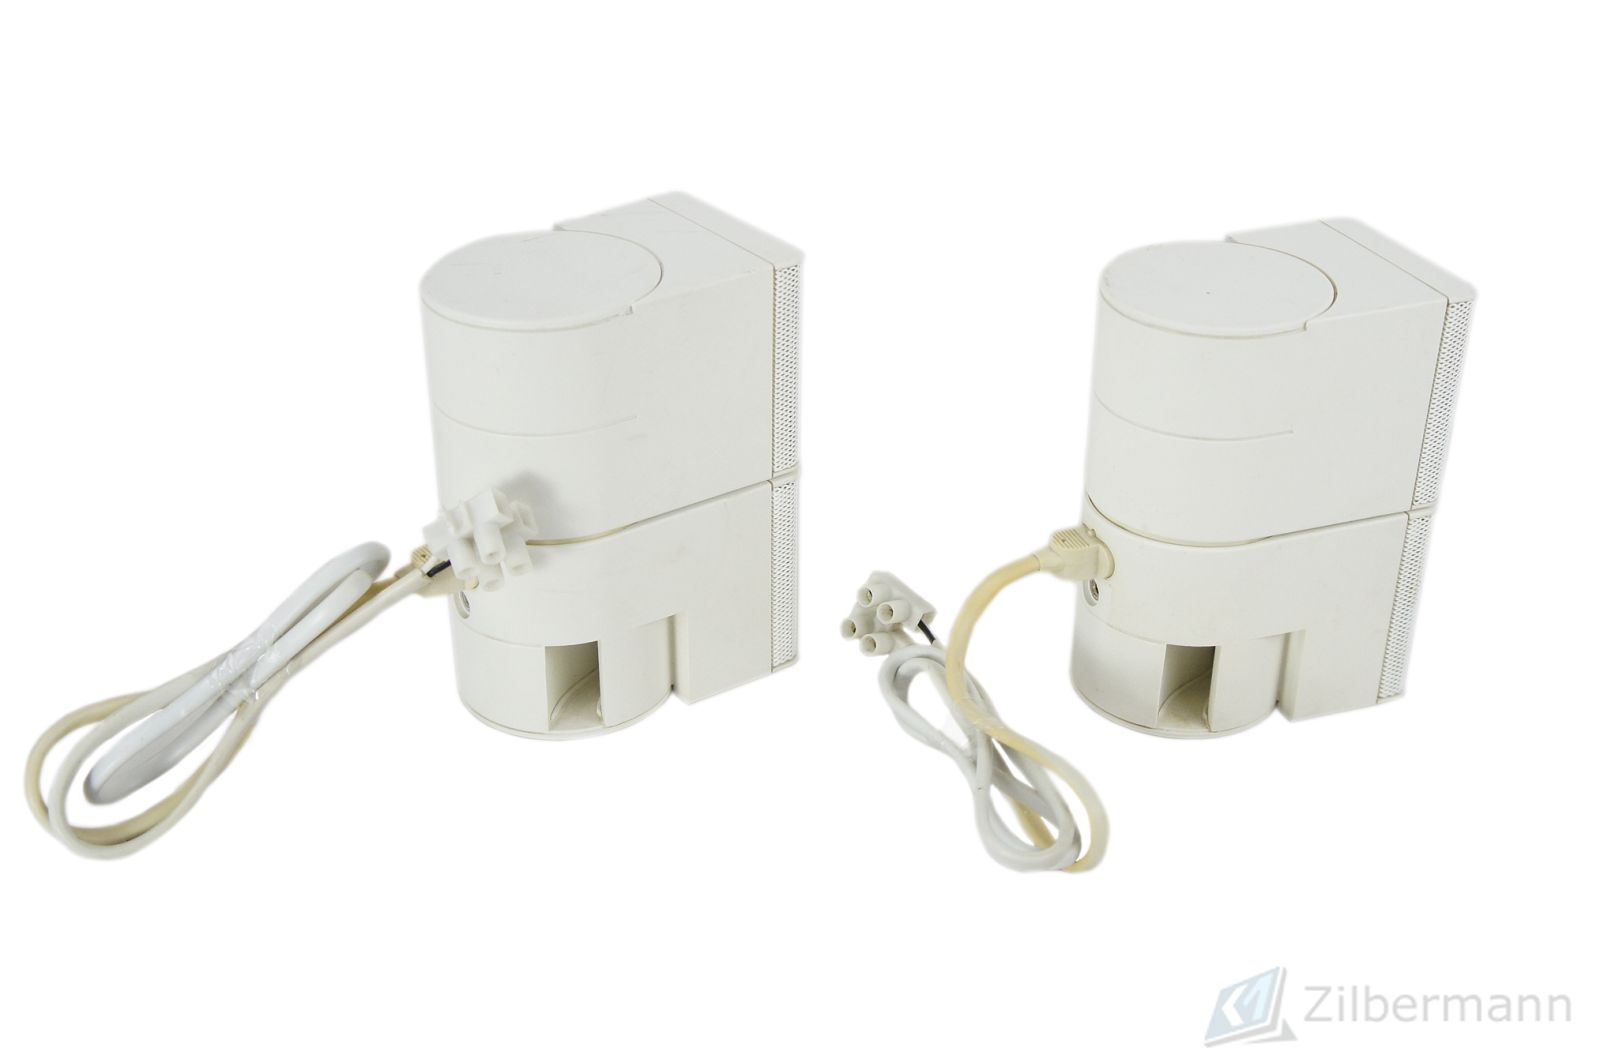 2x_Bose_Jewel_Cubes_Boxen_Satelliten_mit_Adapter_Weiss_03